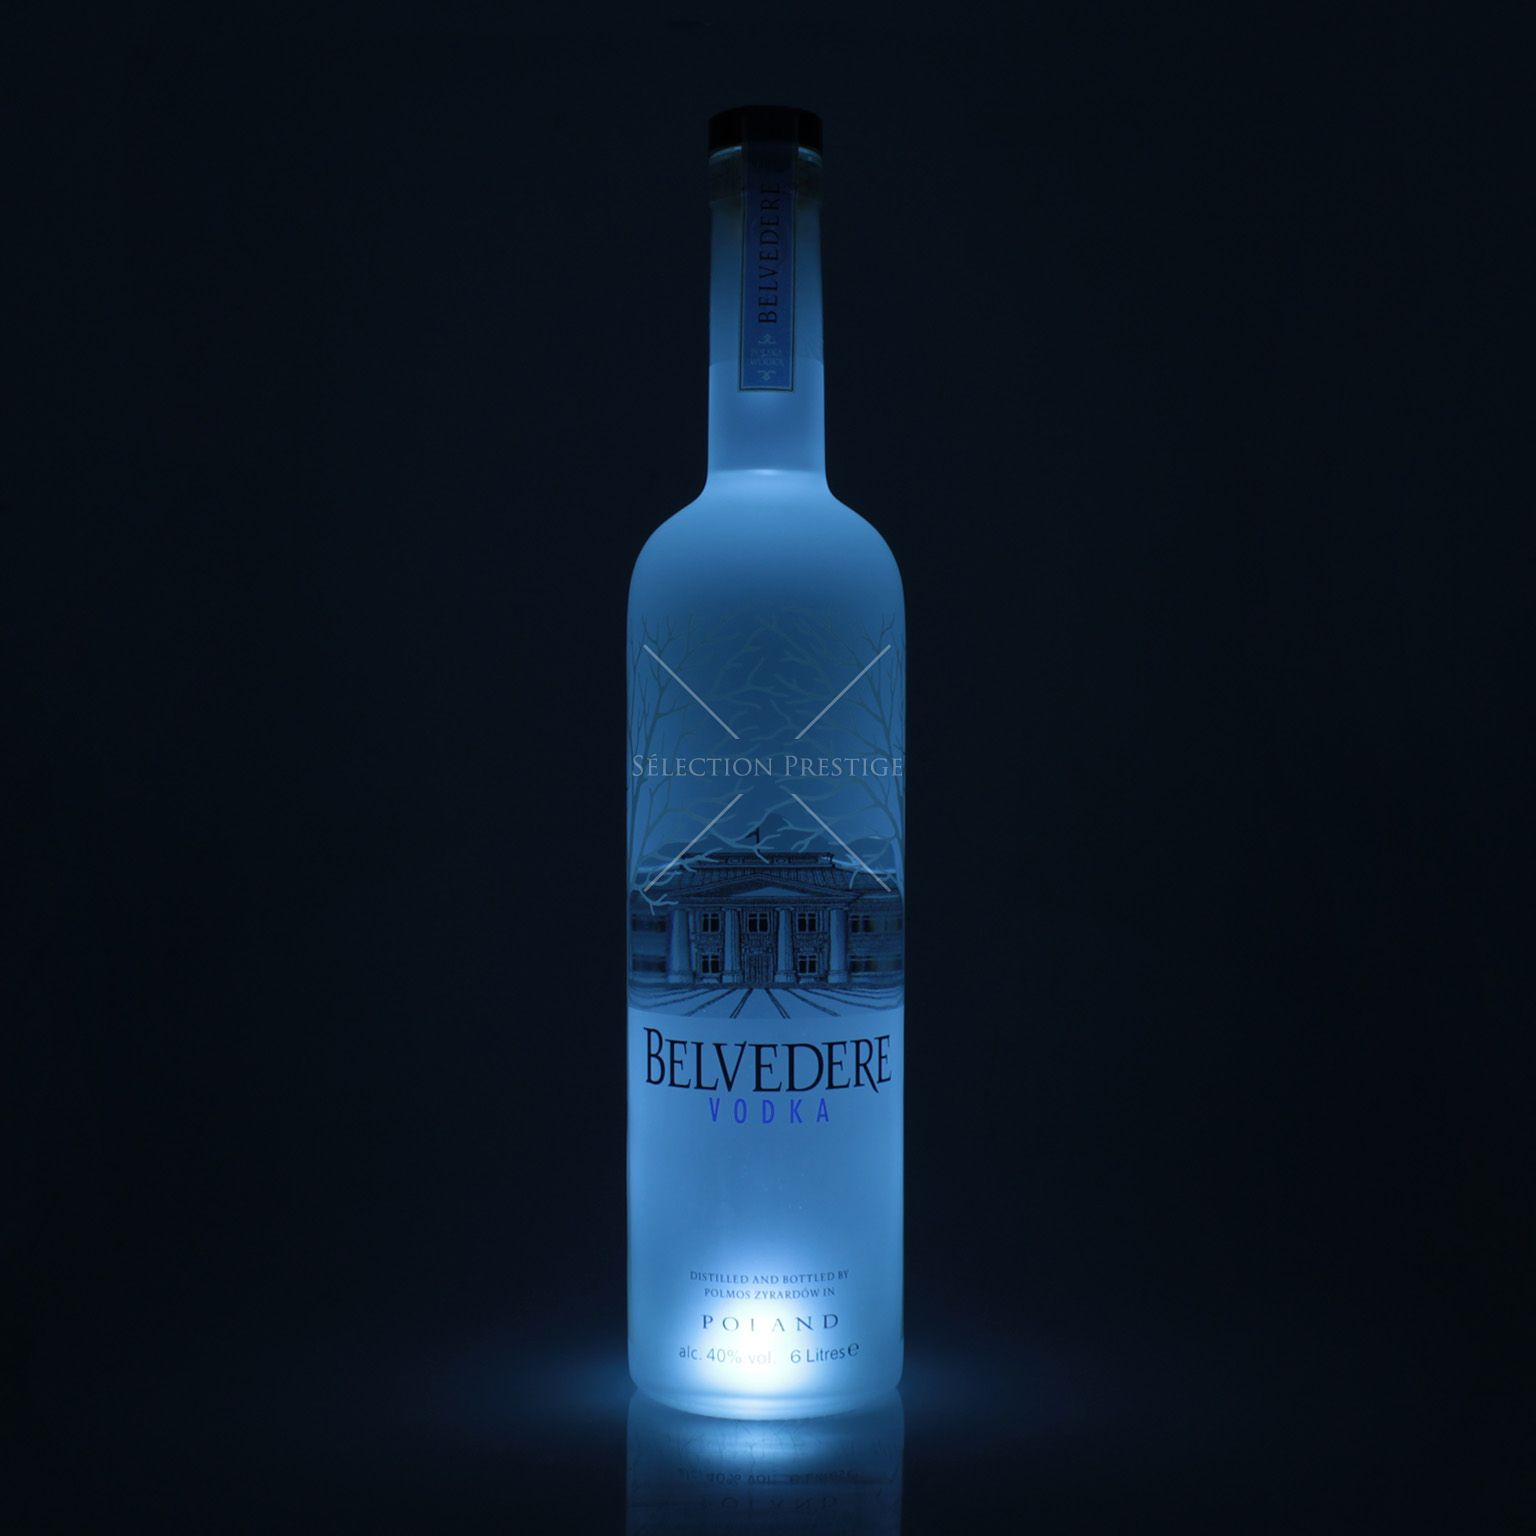 Belveder Vodka 6l